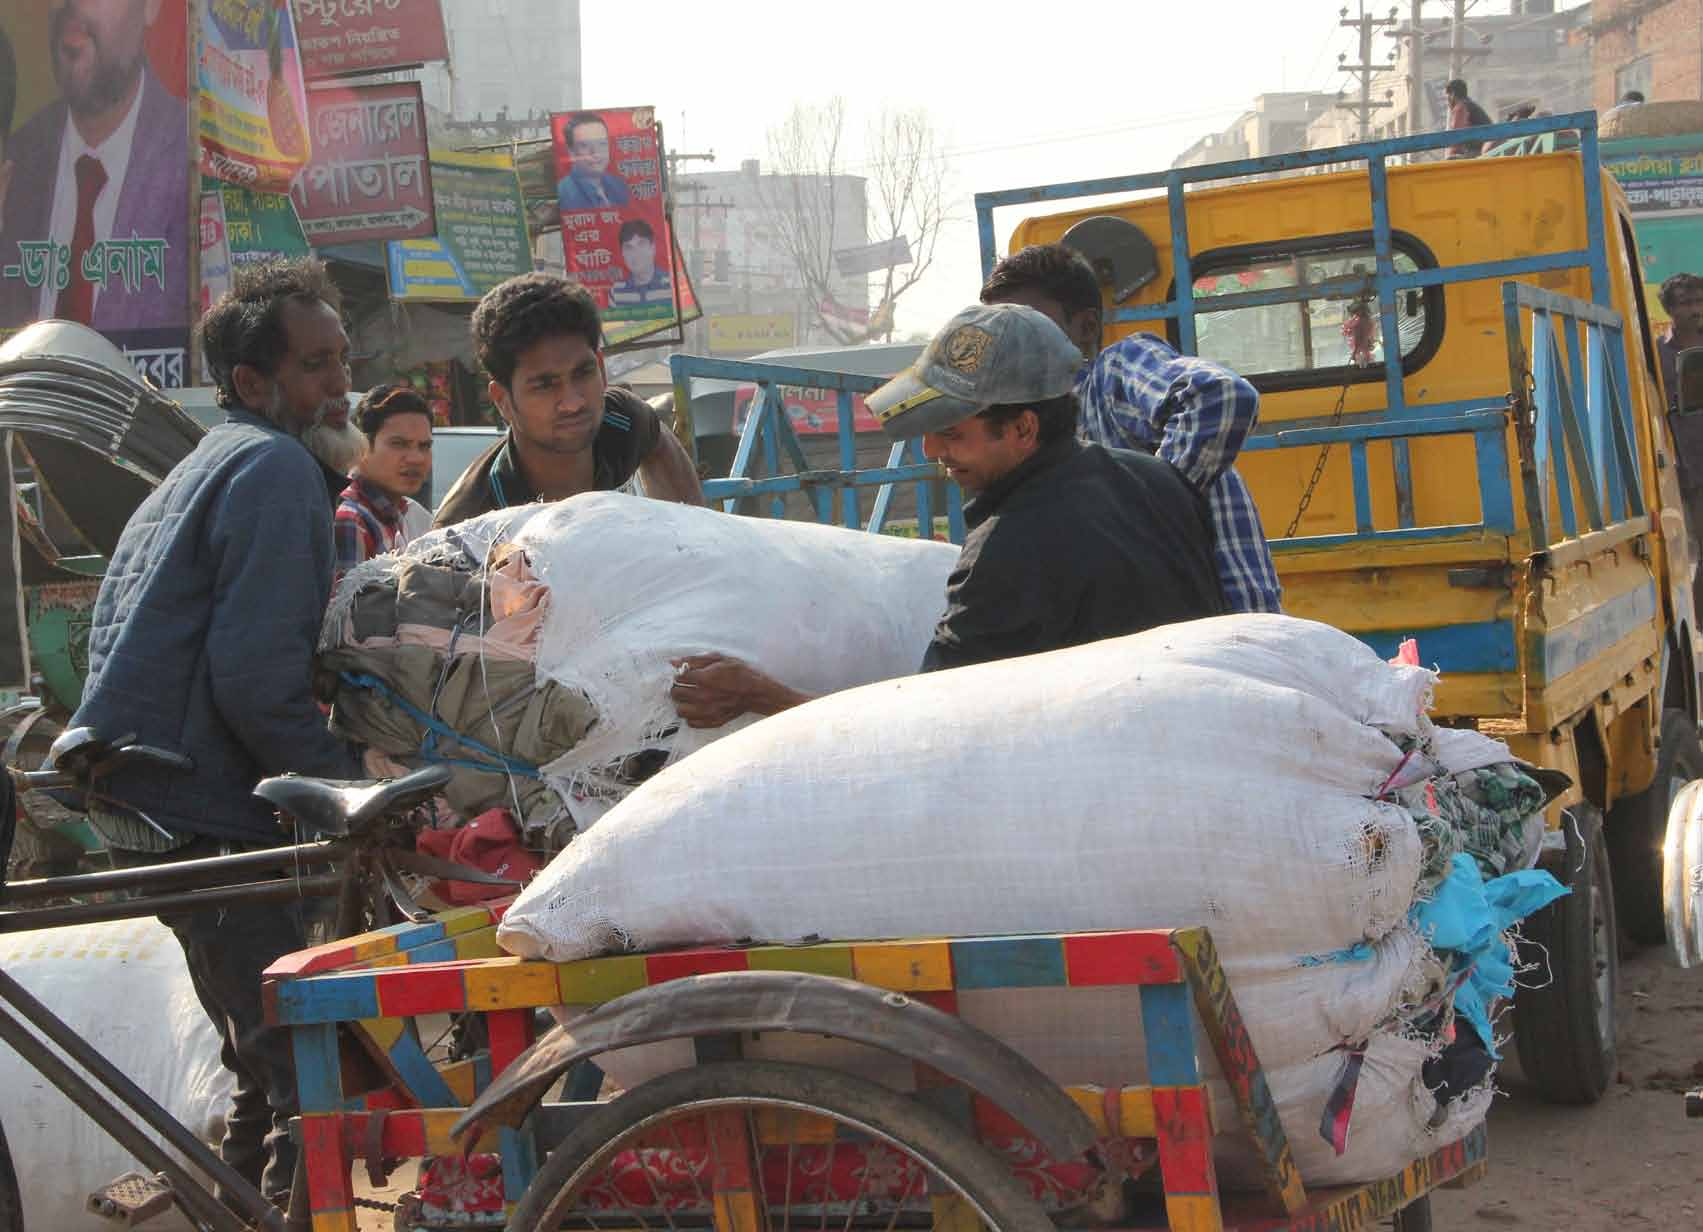 BISHAWJIT DAS Materials and finished goods move between subcontracting factories on rickshaws and small trucks.